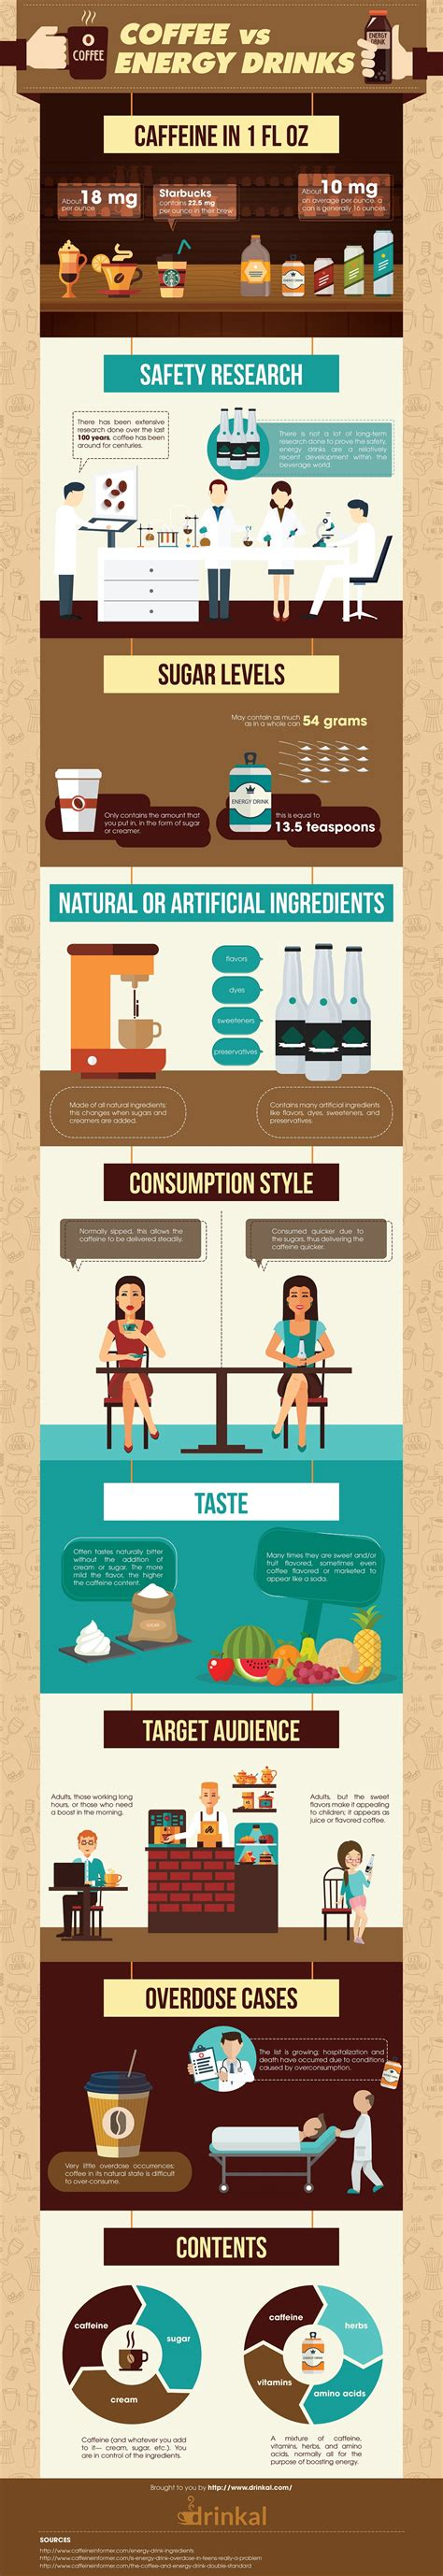 energy drinks vs coffee infographic coffee vs energy drinks